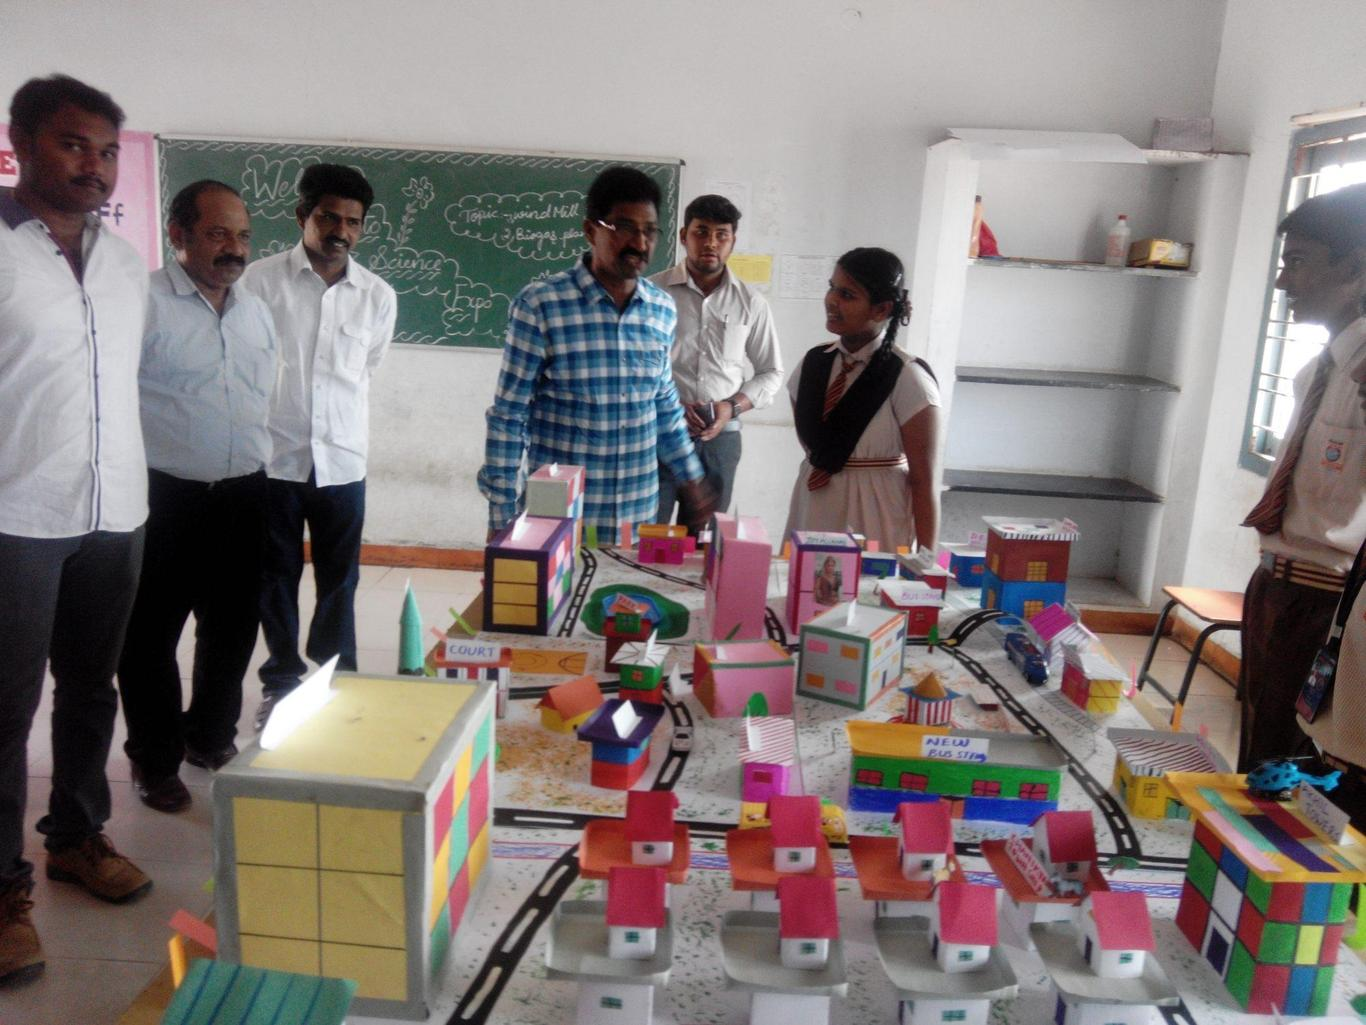 Top Central Schools in Khammam City, Telangana - Blooming Minds Central School